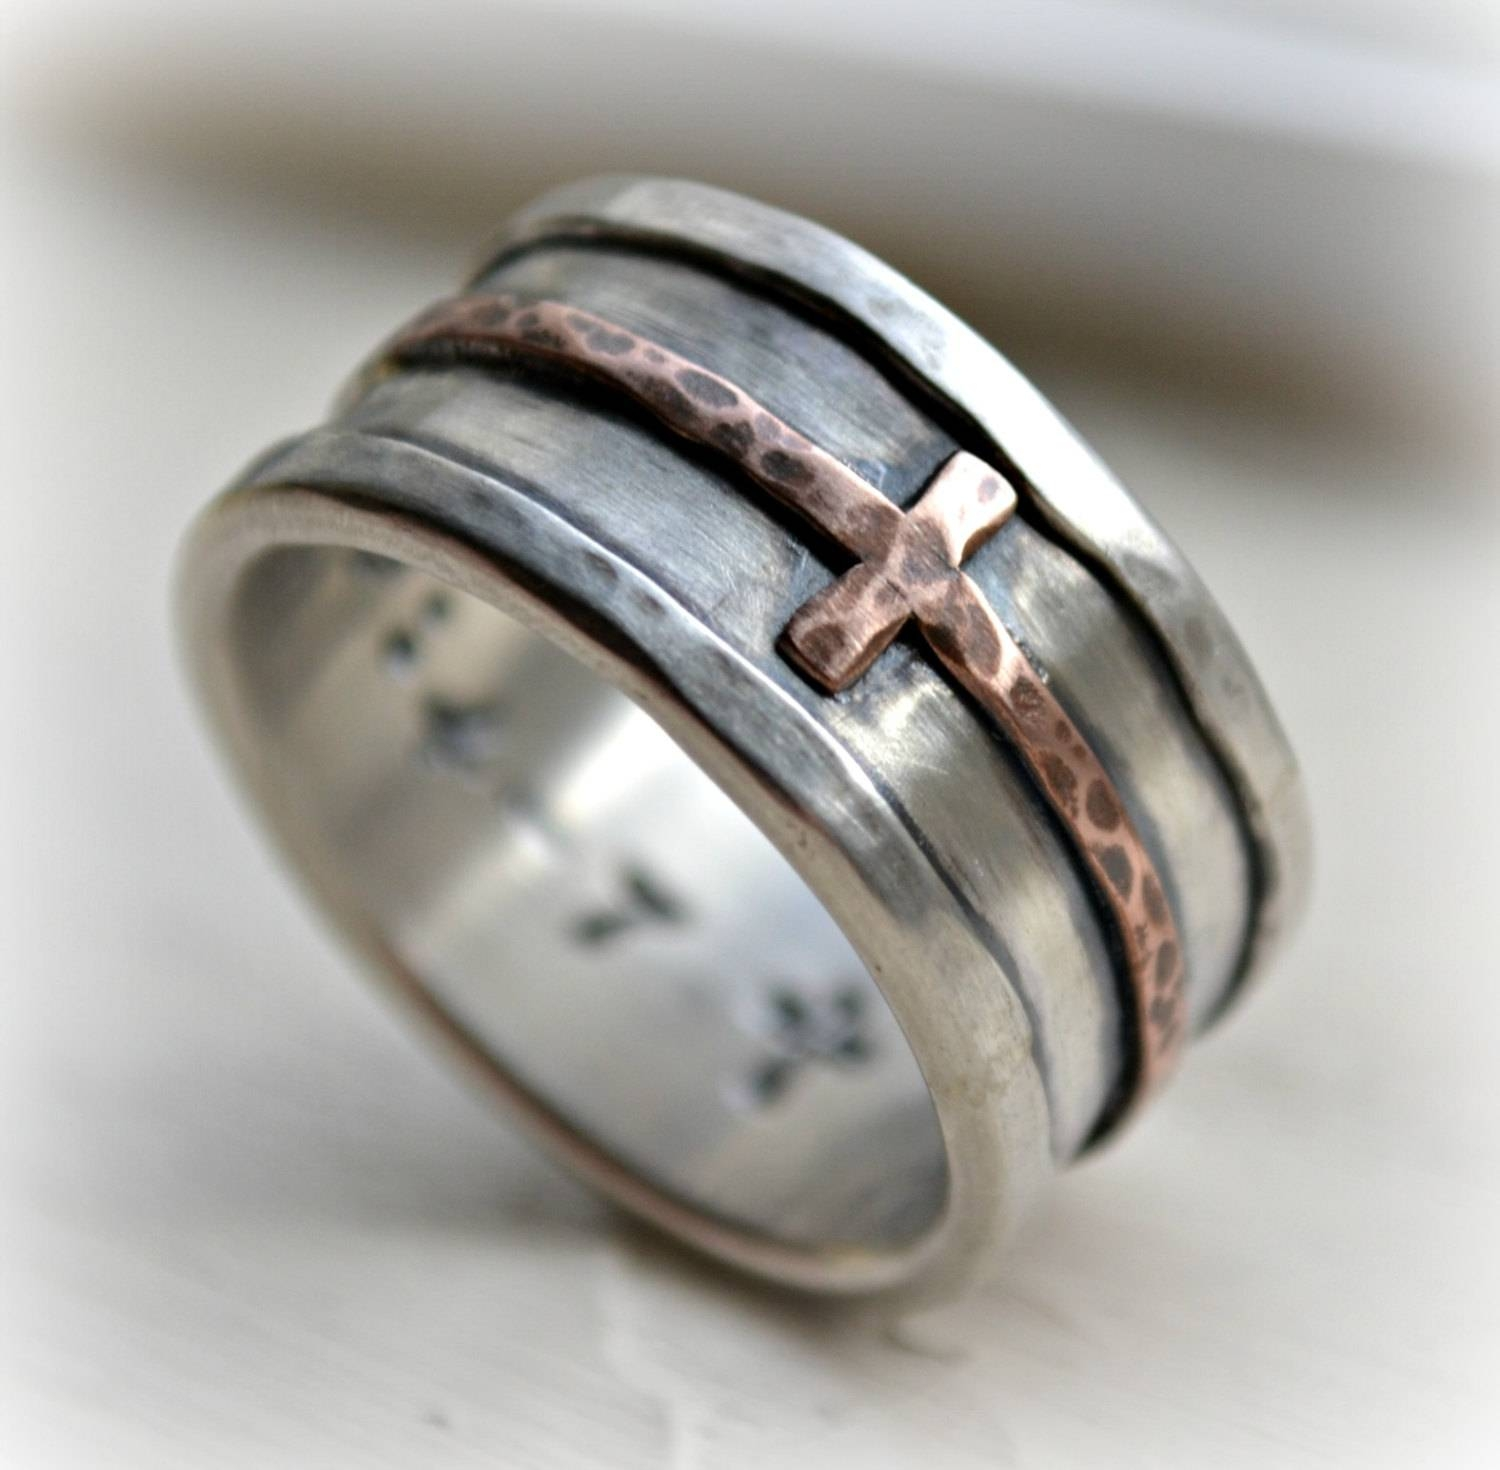 Mens Cross Wedding Band Rustic Hammered Cross Ring Oxidized Intended For Handmade Mens Wedding Rings (View 5 of 15)